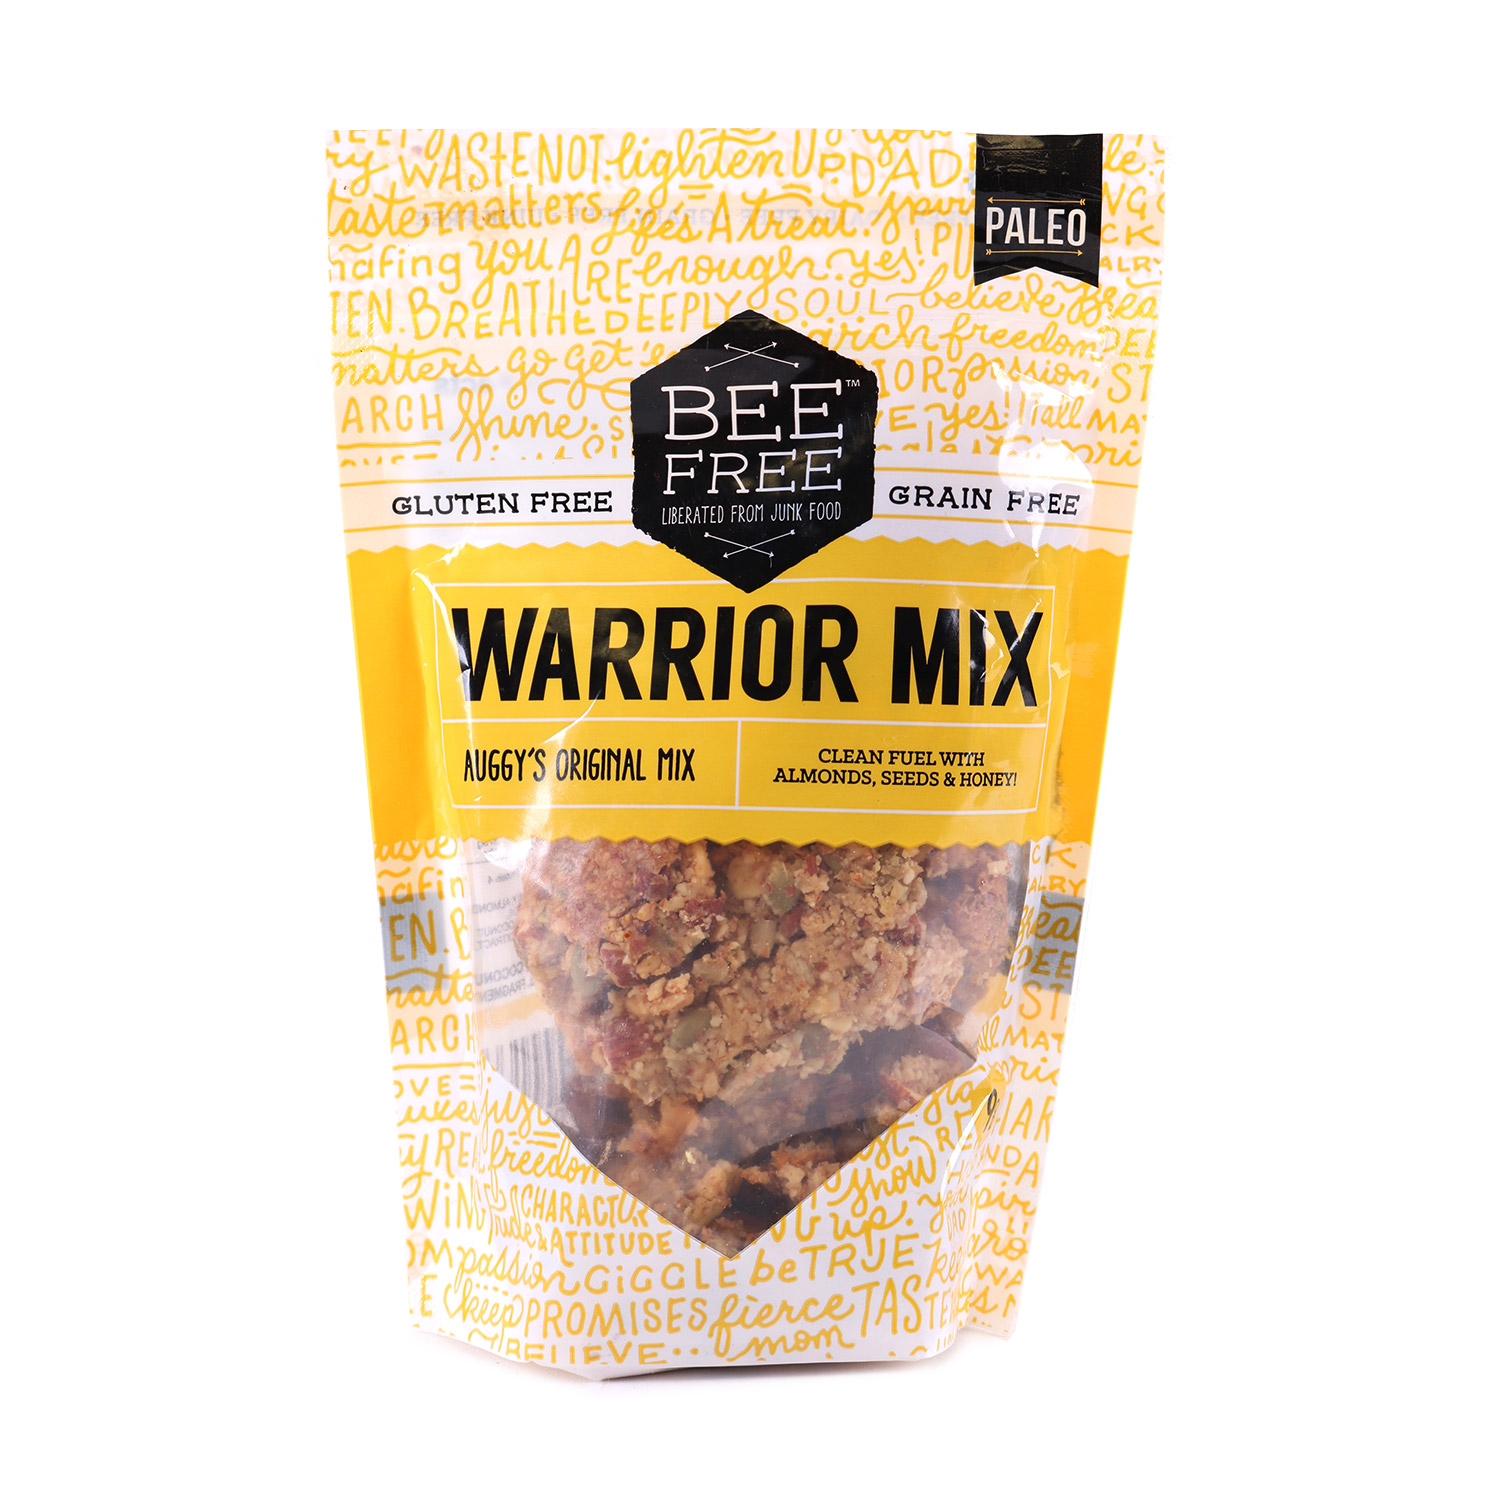 Warrior Mix, Original